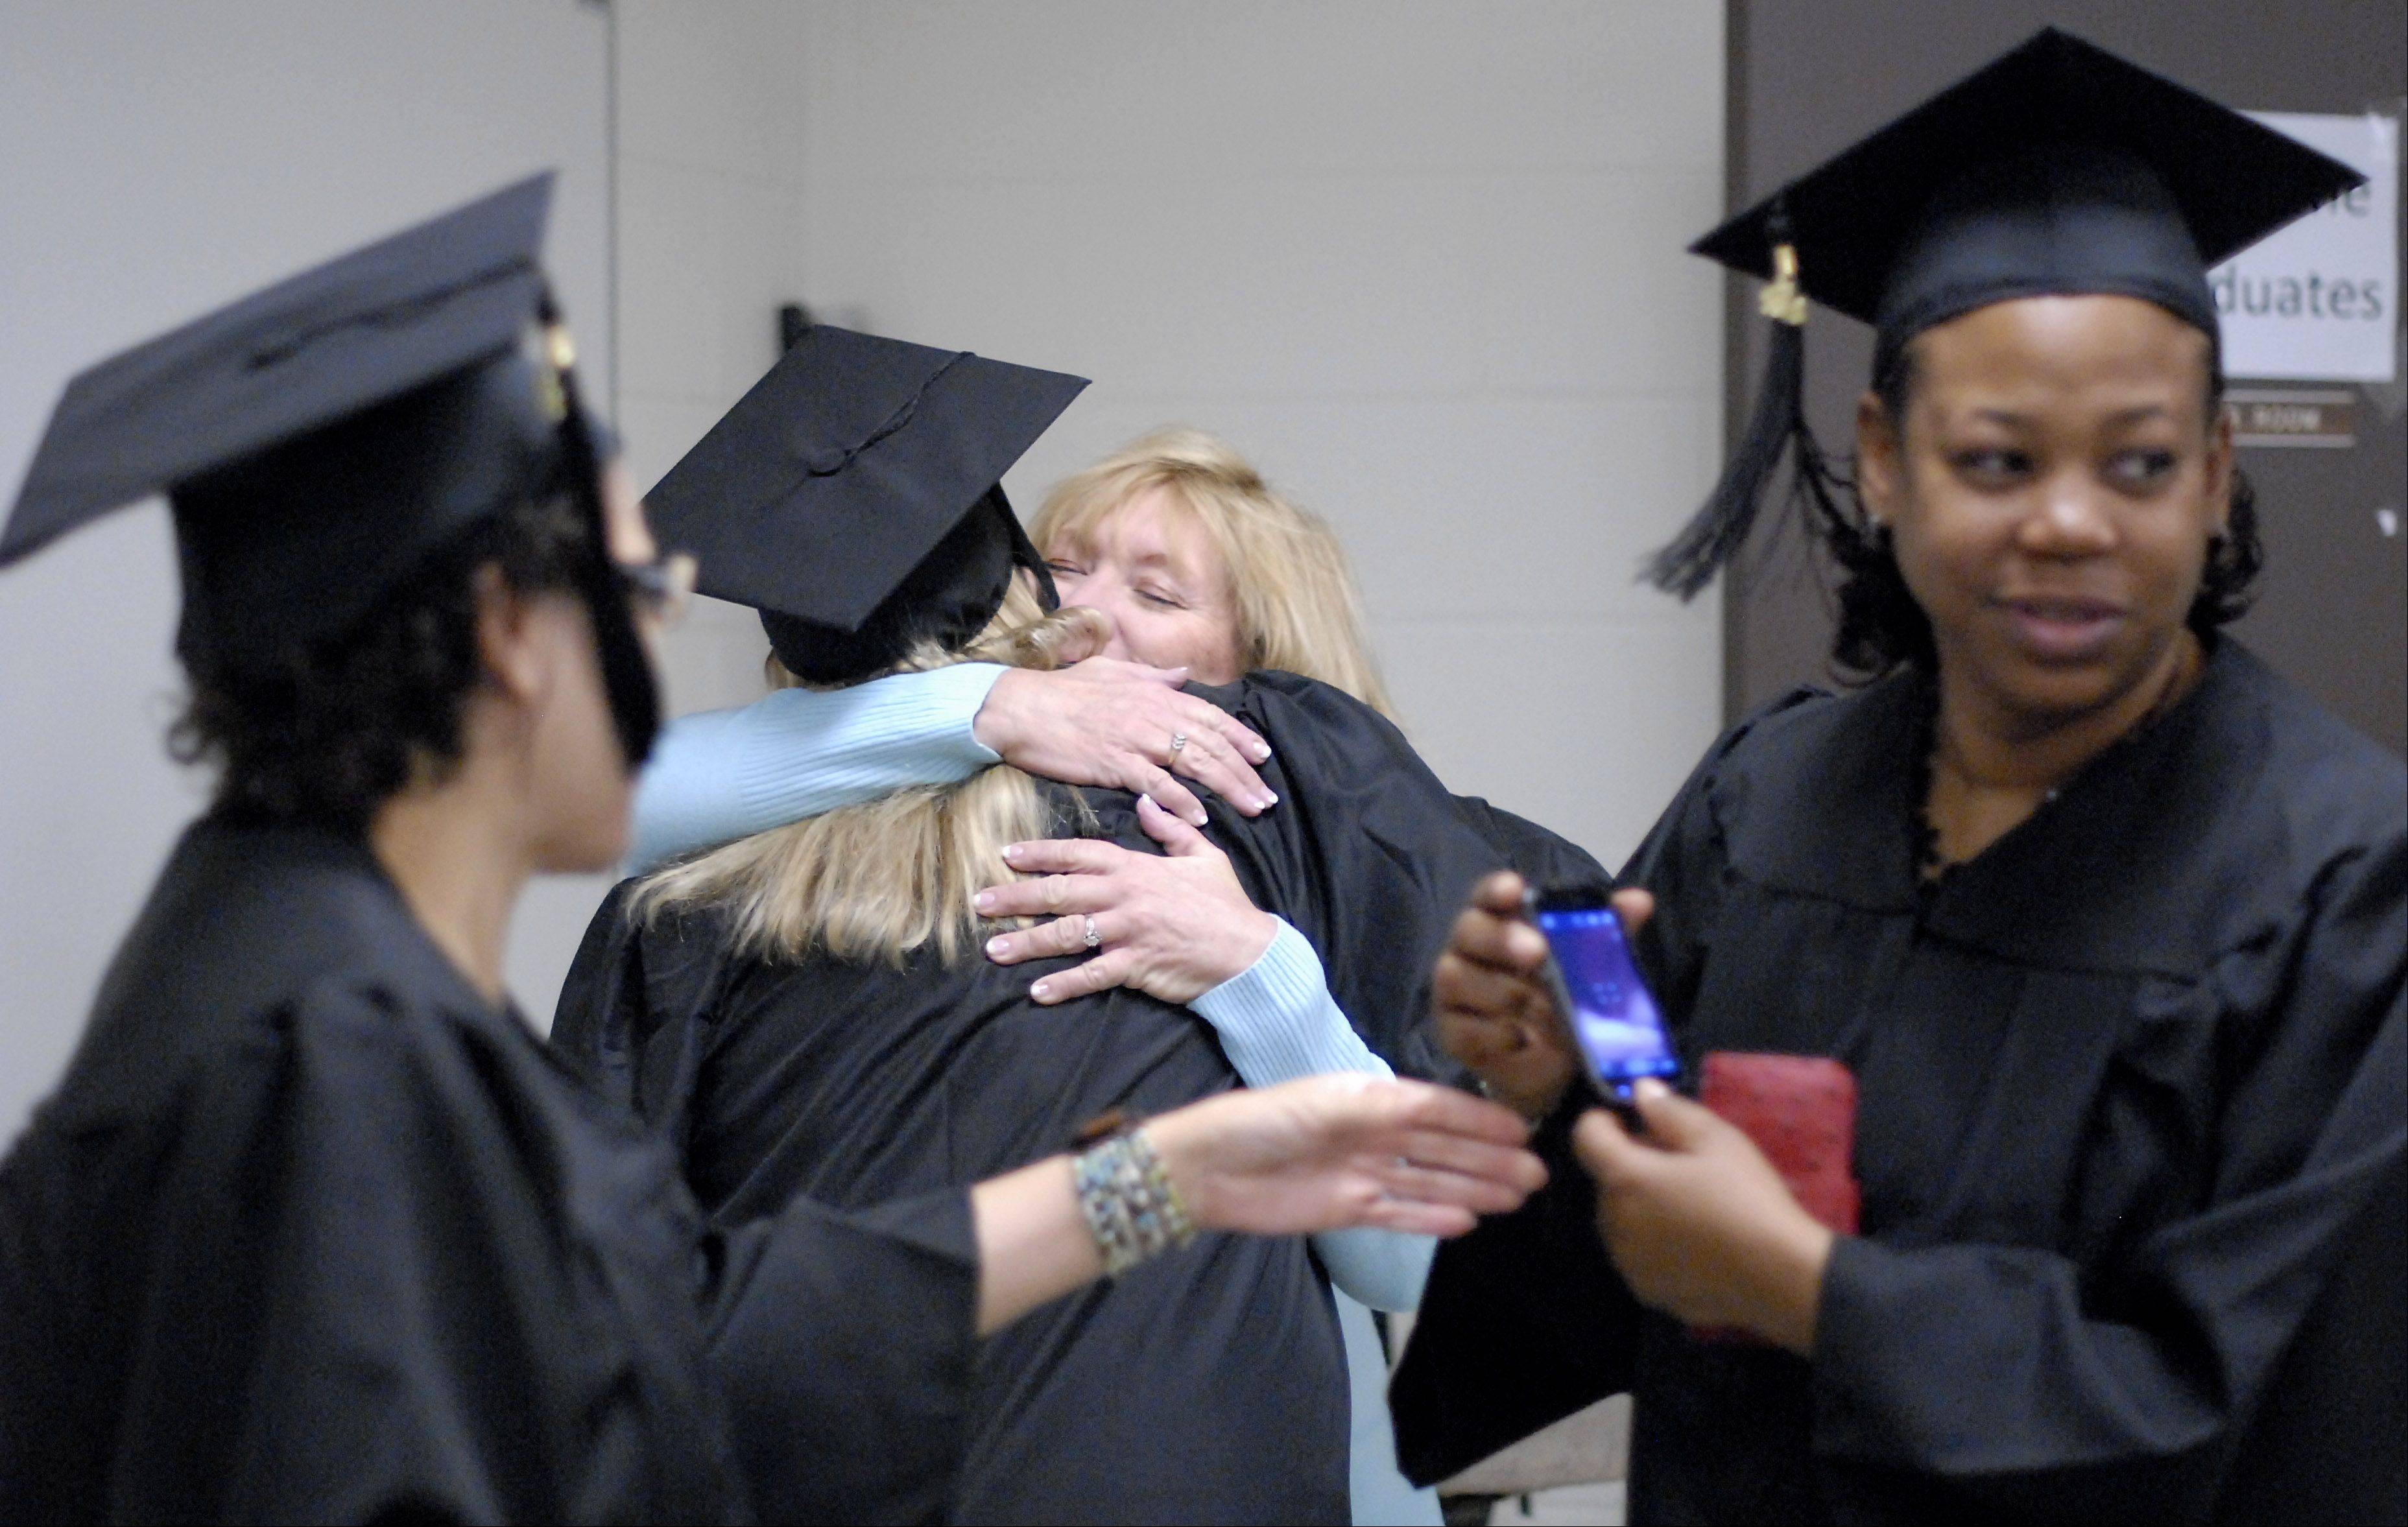 Laura Stoecker/lstoecker@dailyherald.comAs Colleen Williamson of Hanover Park passes her phone to Bridgette Sowers of Elgin for photos, Michelle Lawler of Gilberts gets a hug from her stepmother, Suzy Macino of Geneva, before the morning commencement ceremony at the Judson University chapel in Elgin on Saturday, December 15. The three graduates earned a Bachelor of Arts in Human Resource Management.